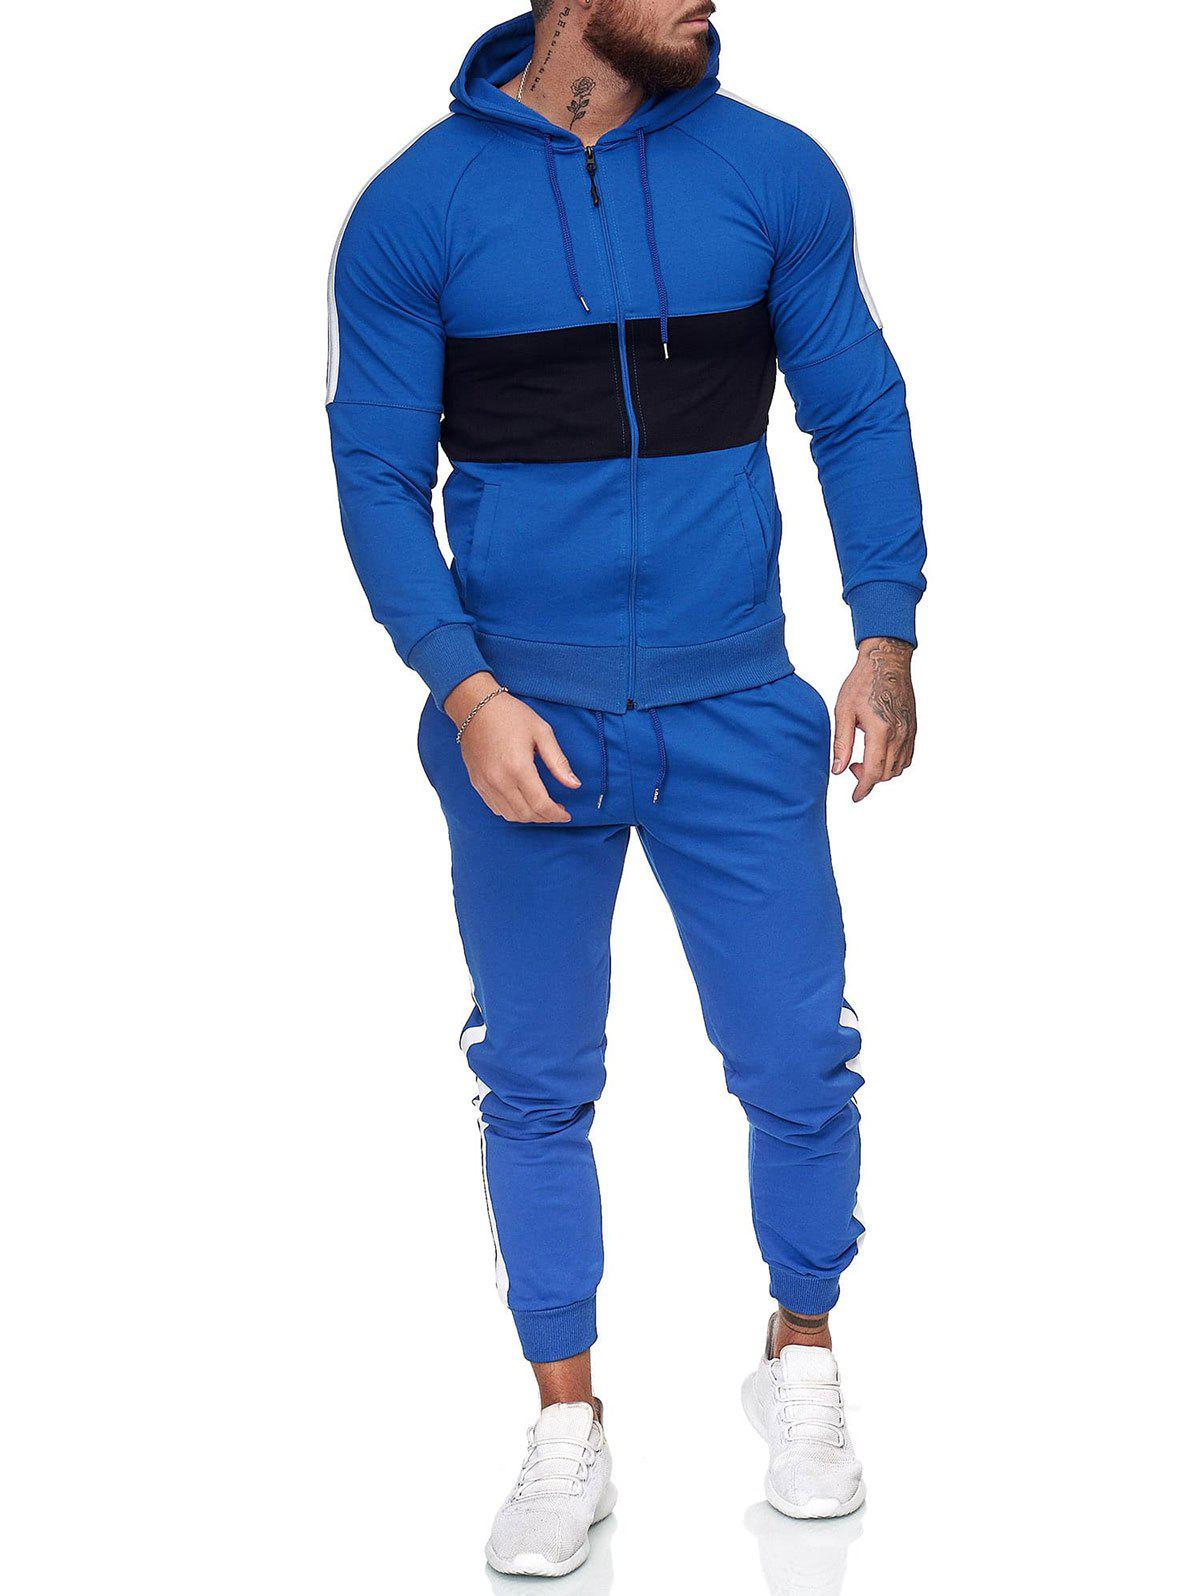 Online Contrast Zip Up Hoodie Jacket and Pants Two Piece Sports Set